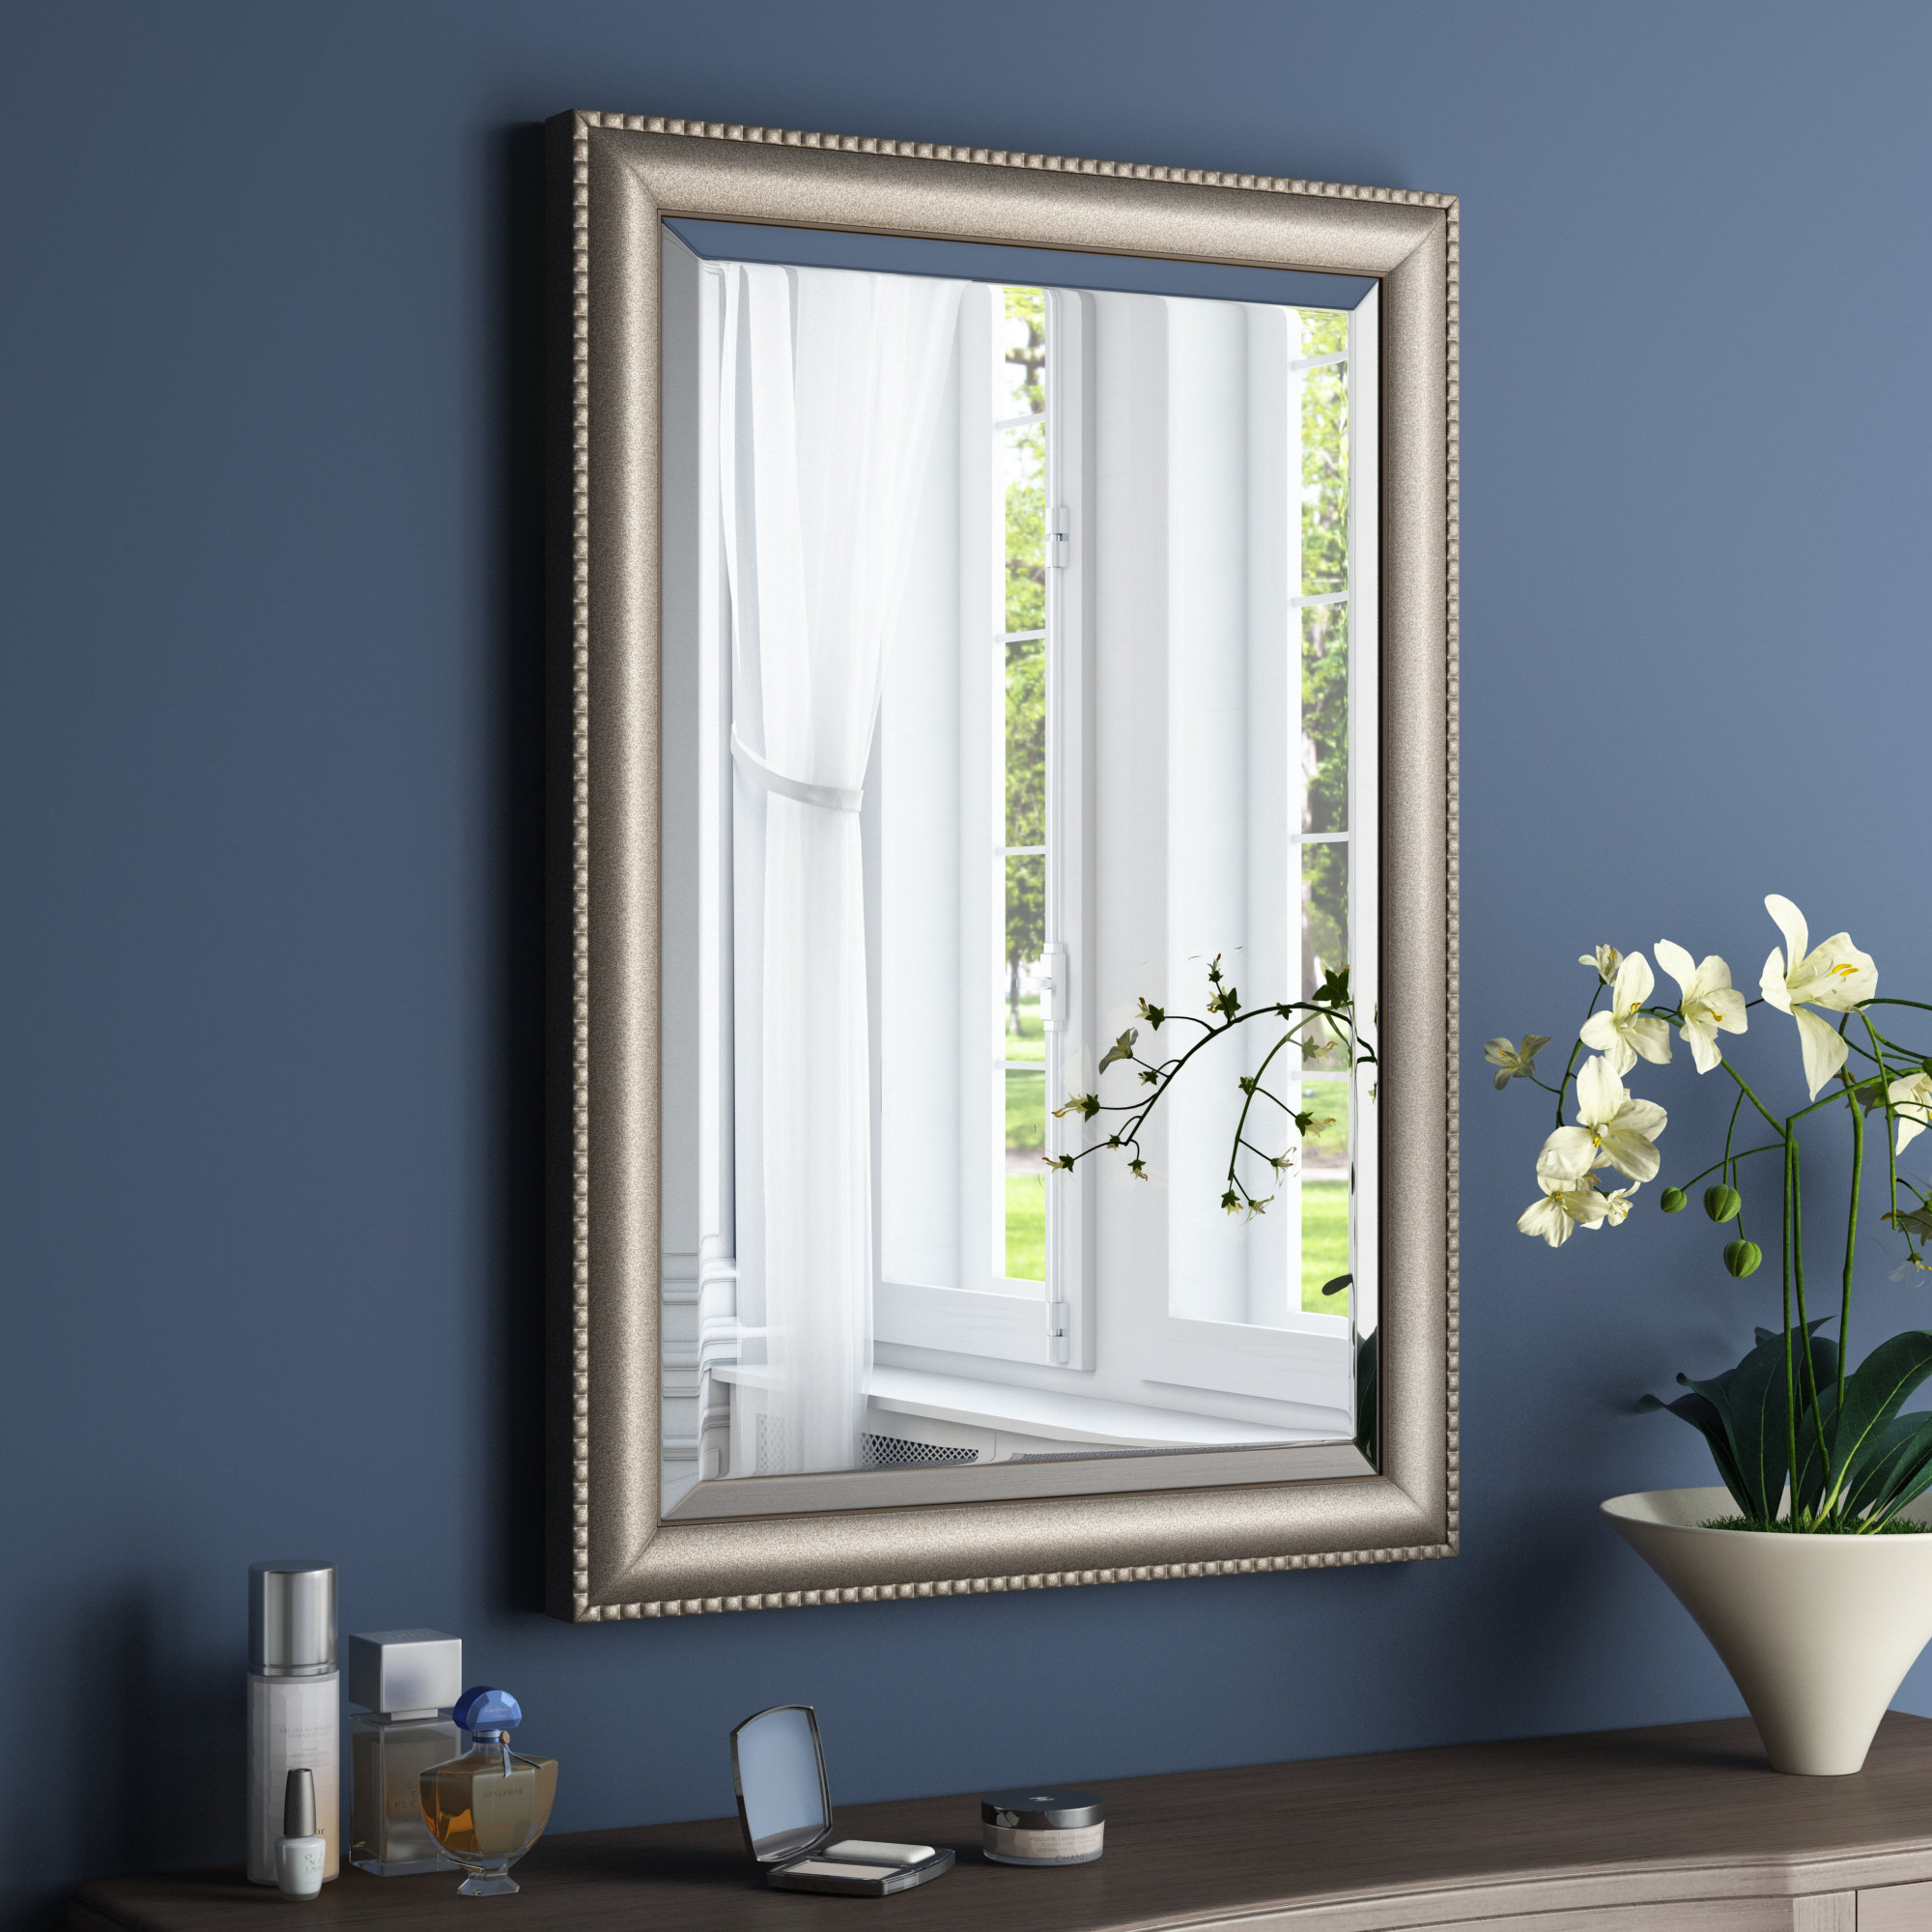 Rectangle Framed Accent Mirror Intended For Bristol Accent Mirrors (Image 19 of 20)